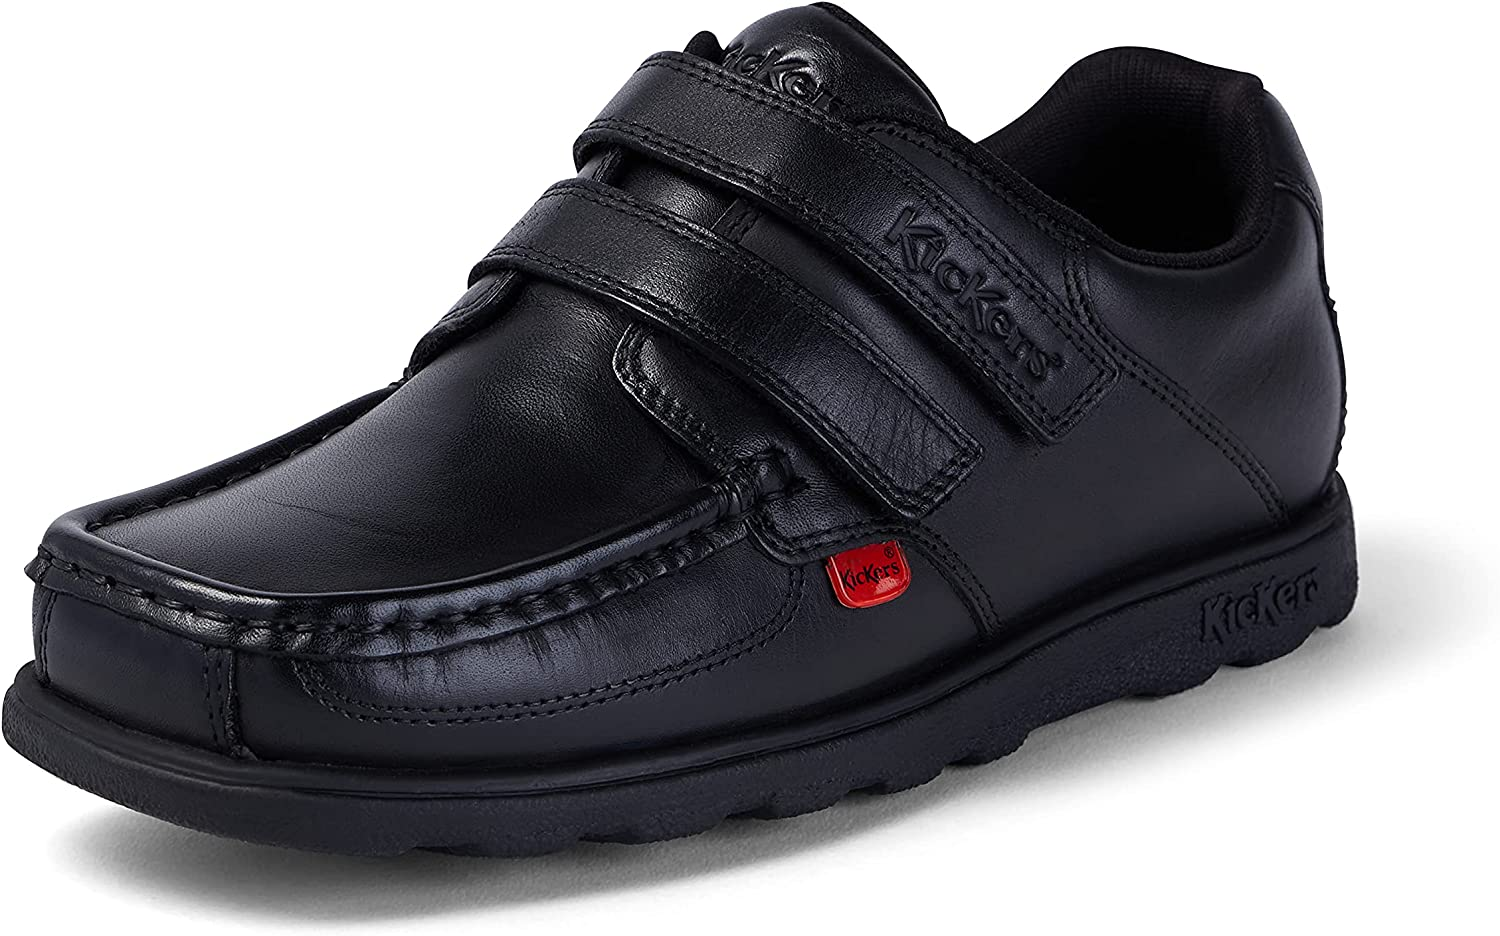 Kickers Men's Leather Shoes